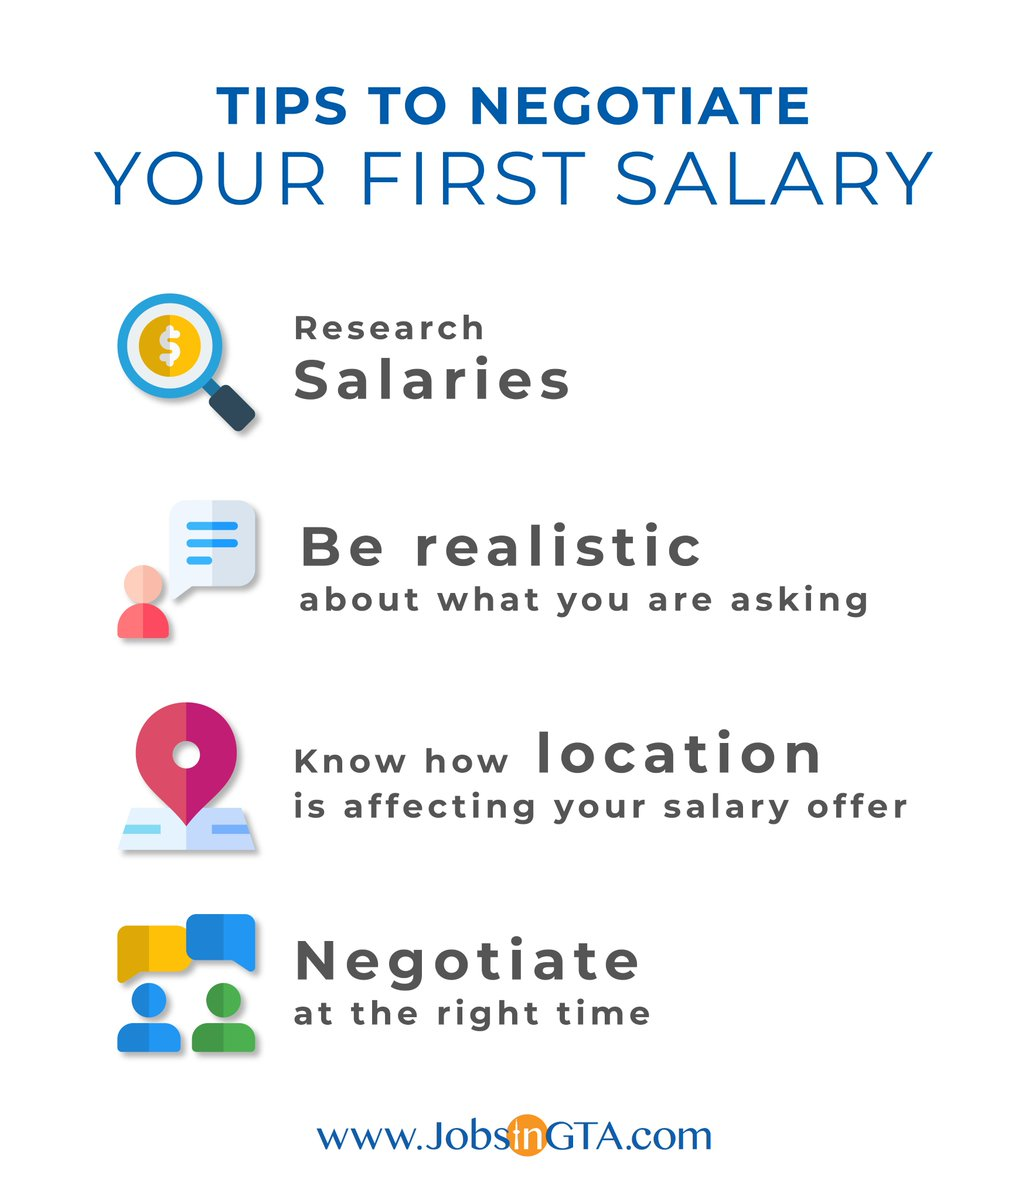 Negotiating your salary is extremely important, especially in your first job. Your starting salary serves as an anchor throughout your career. Sigunup @ https://t.co/PHvvuzXXkZ & get hired by the best employers in GTA. https://t.co/h3s0A7uSfz